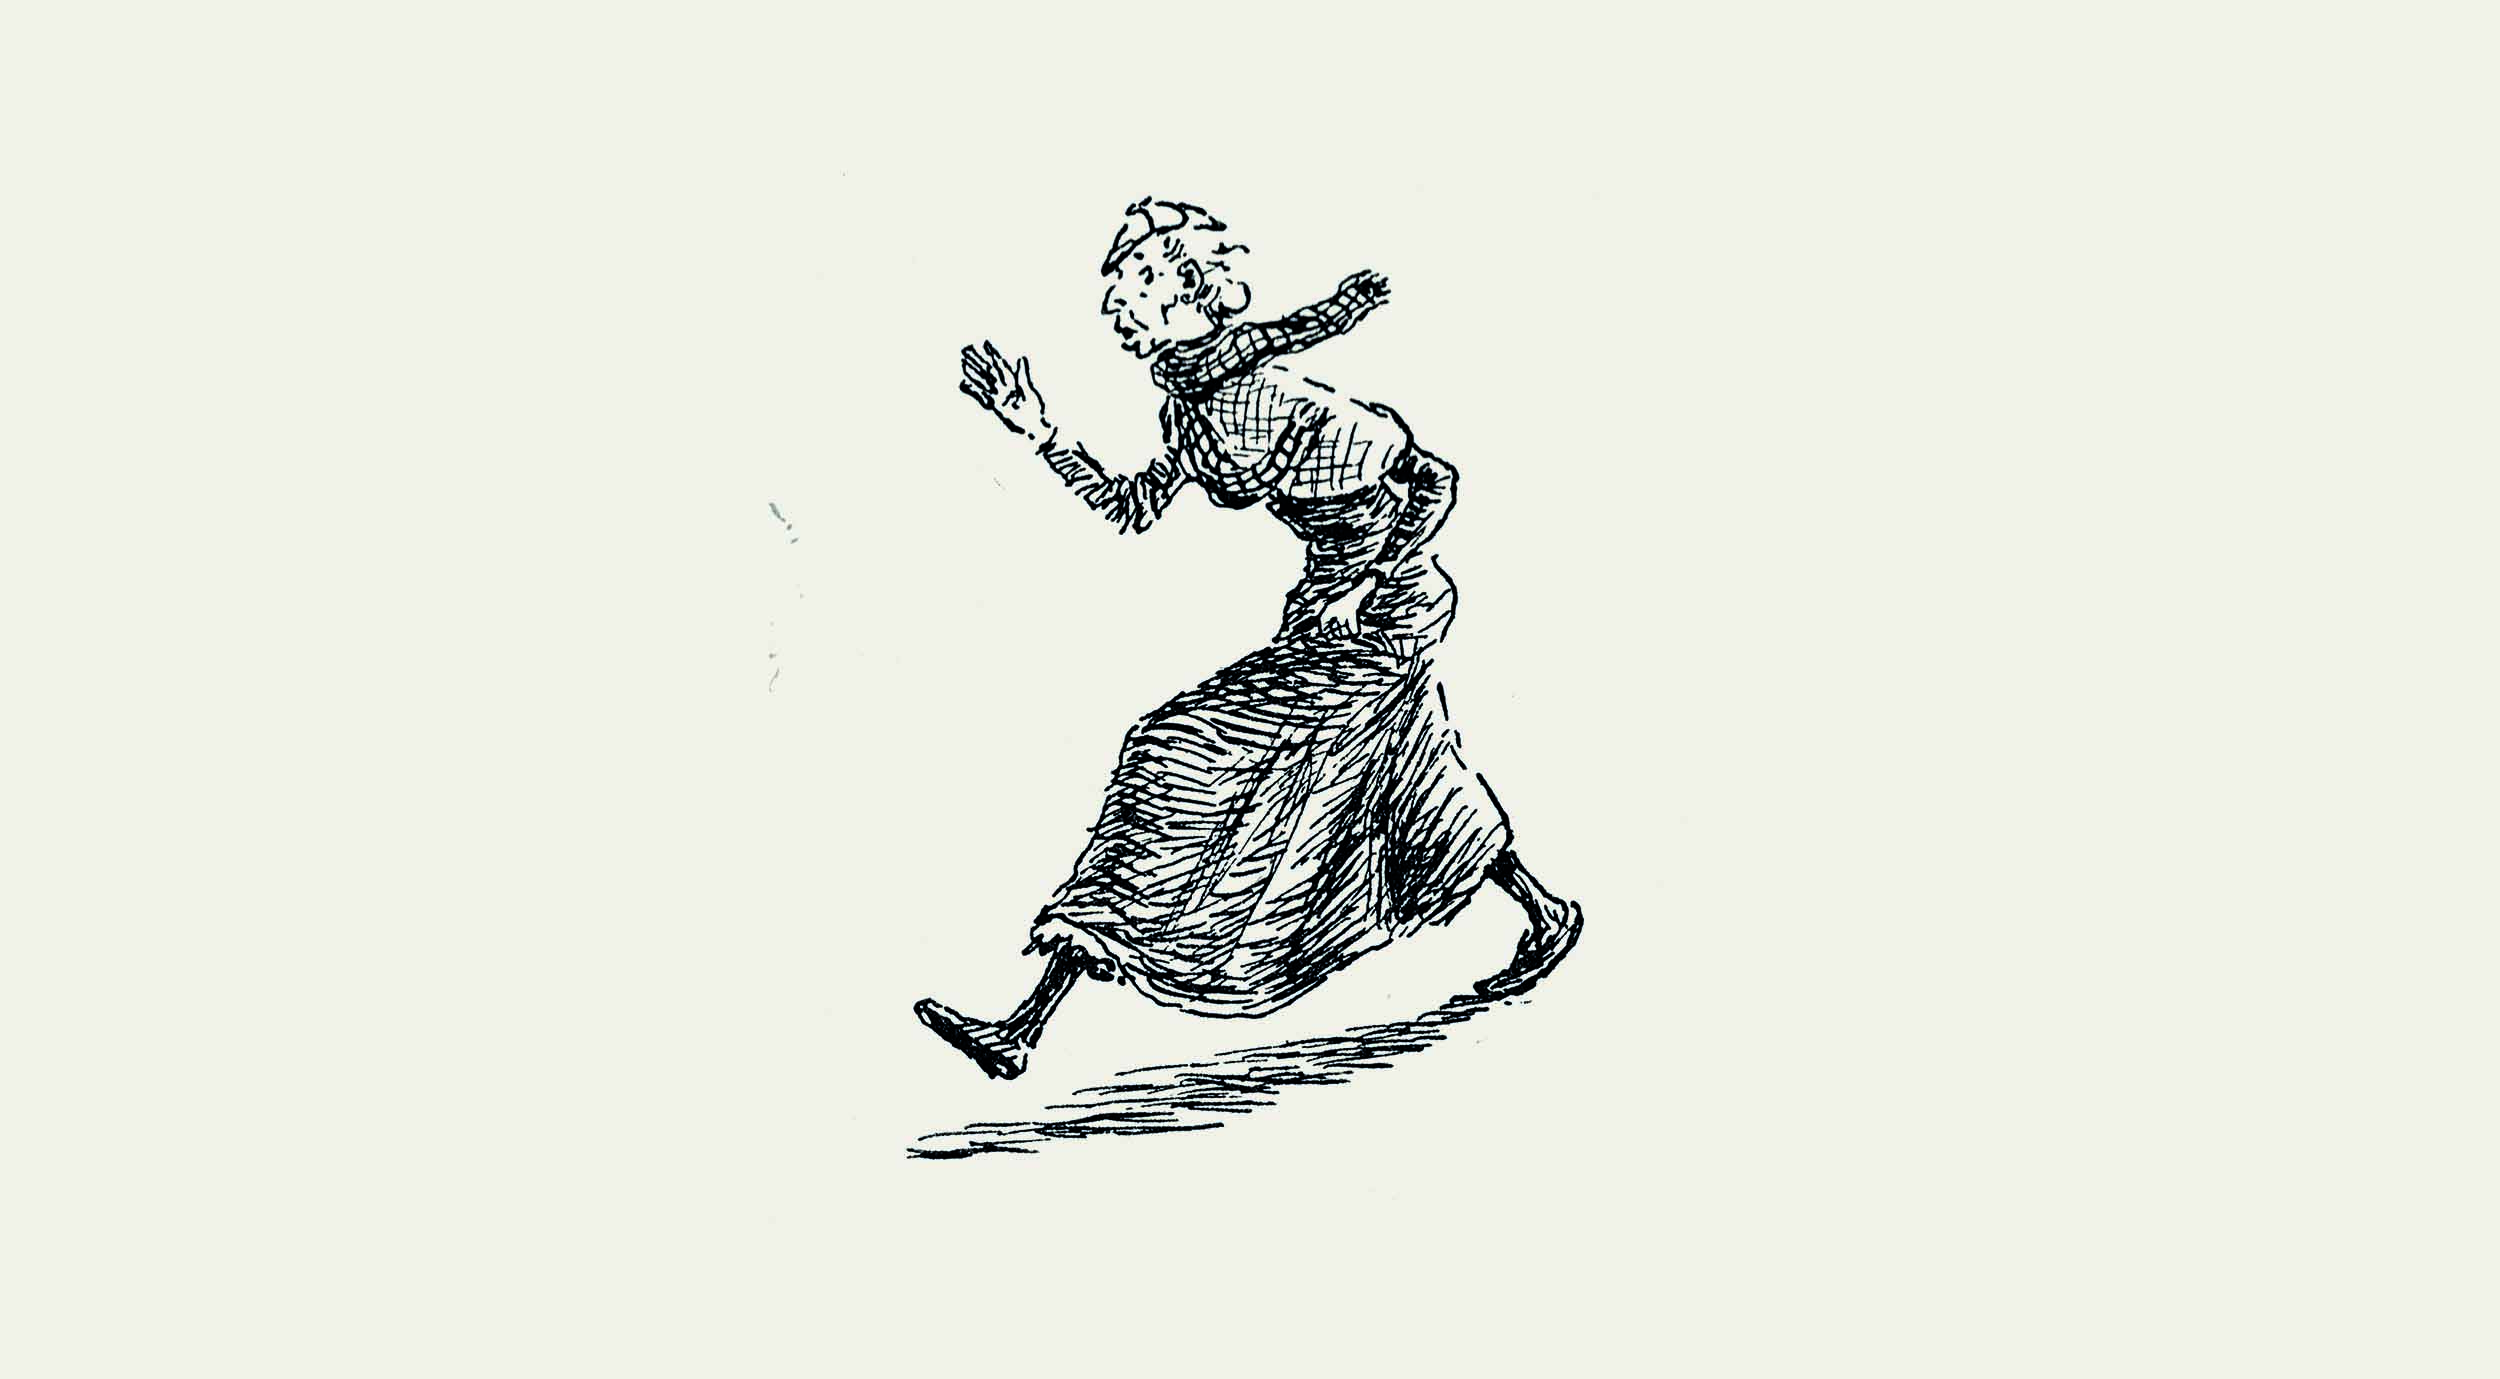 Illustration from Auntie Robbo of an old woman running